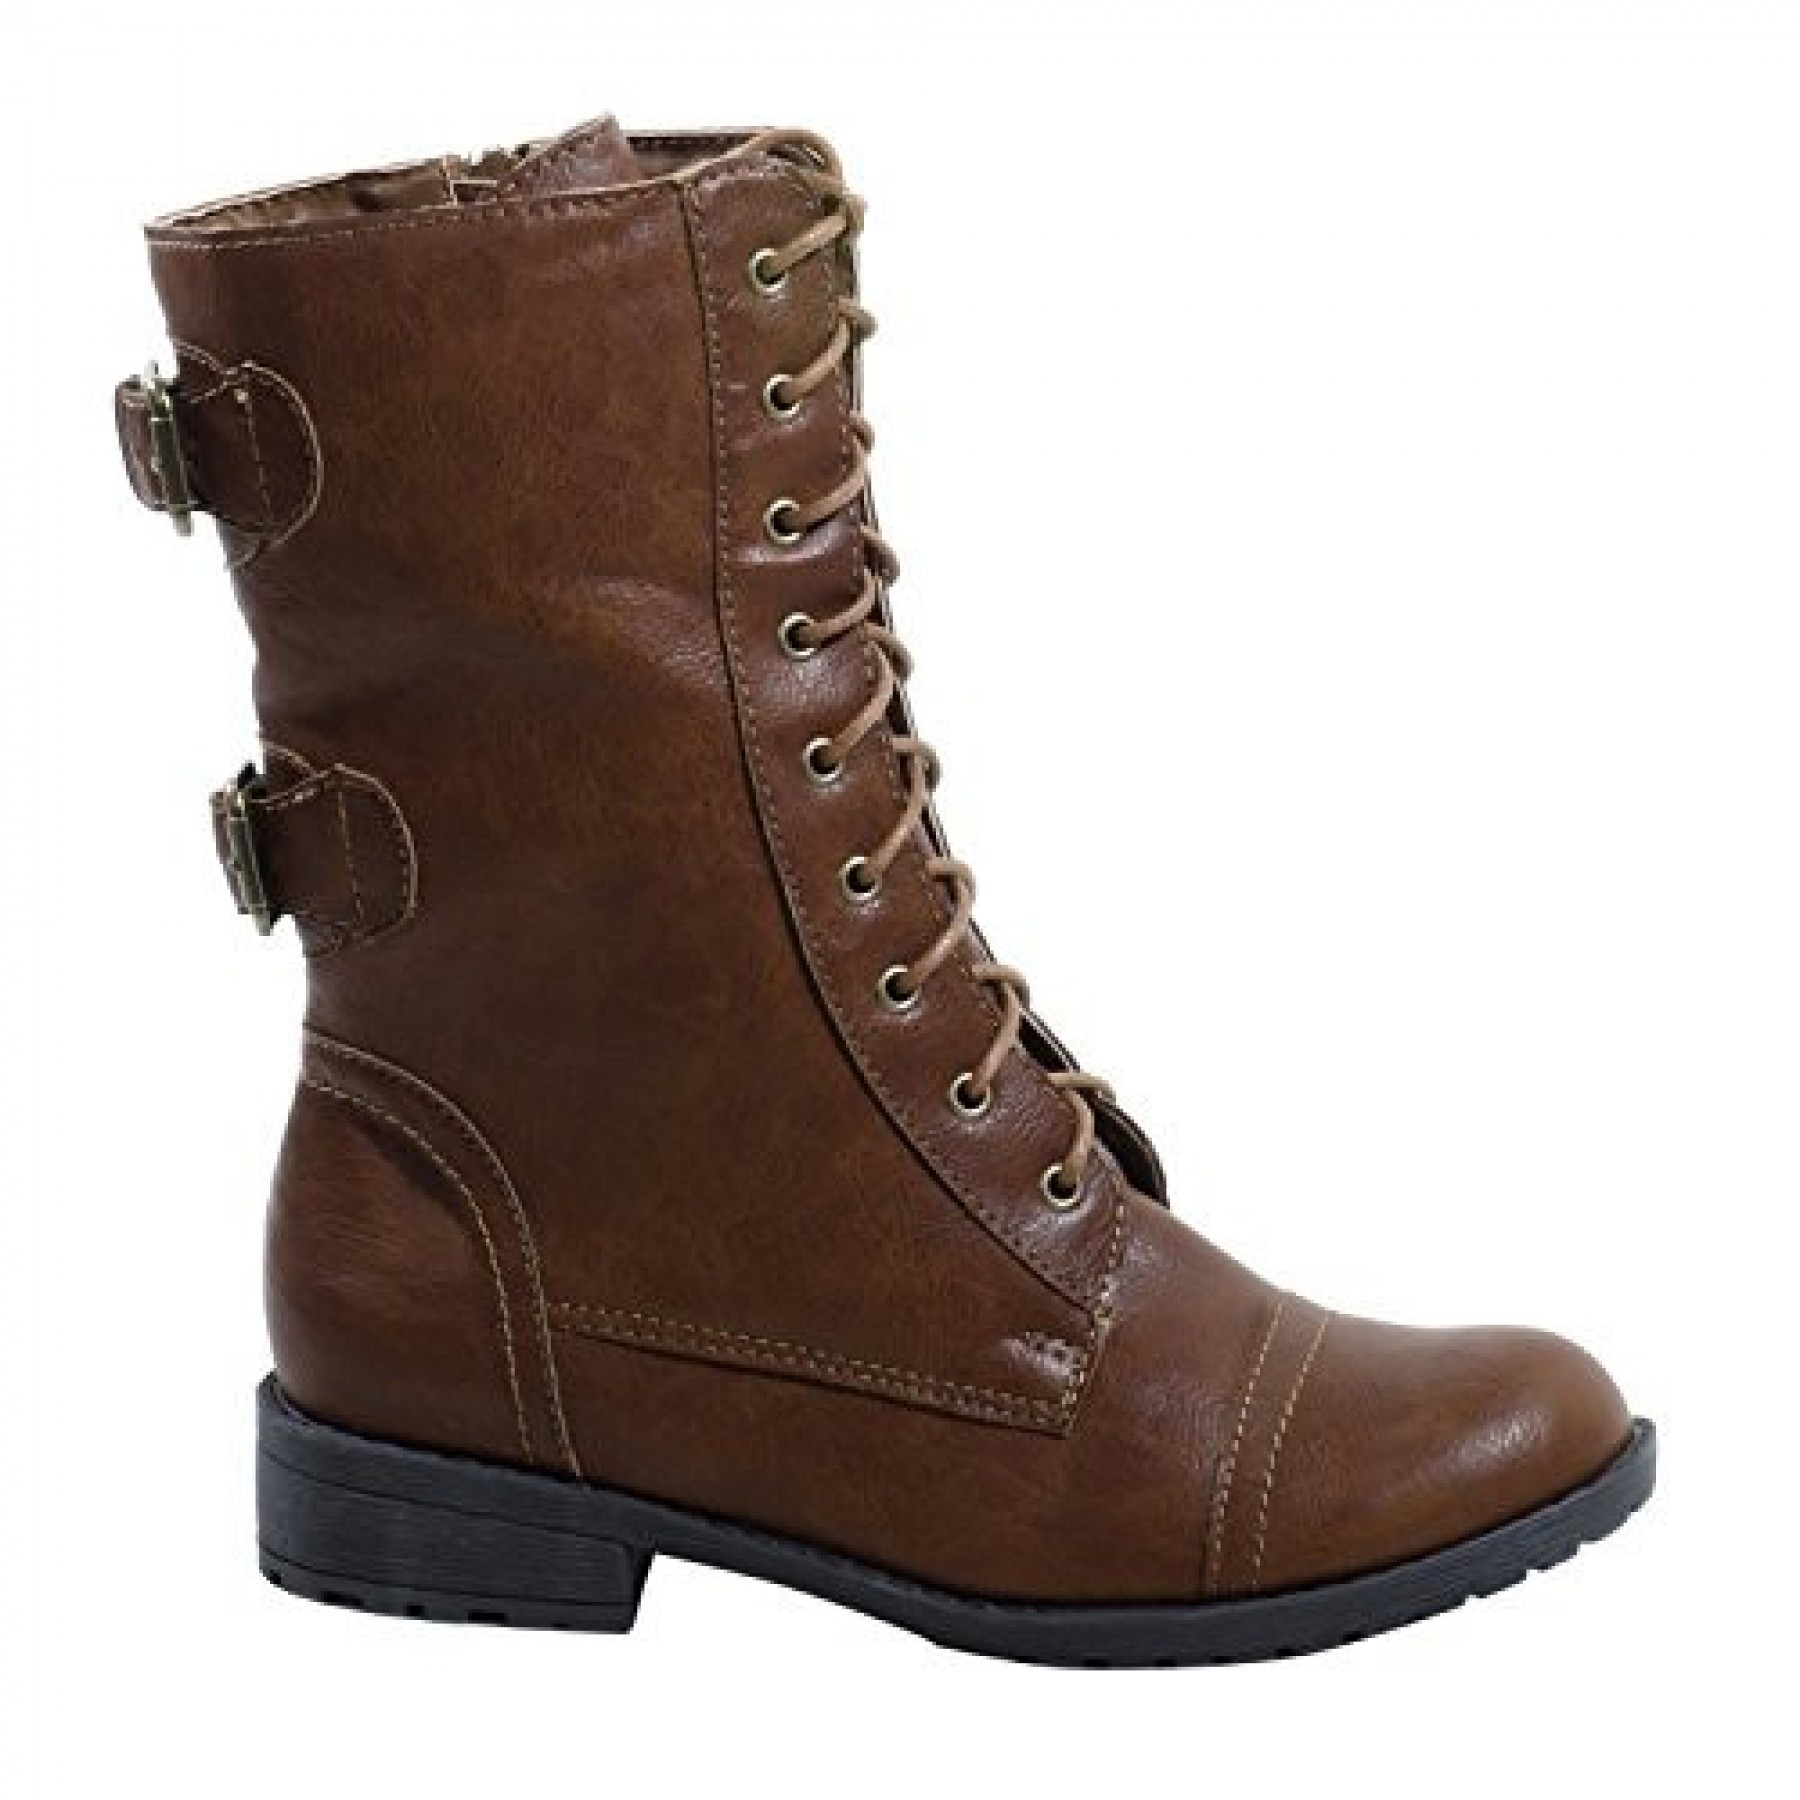 Women's Cognac Manmade Levanna Ankle Boot with Side Buckle Accents